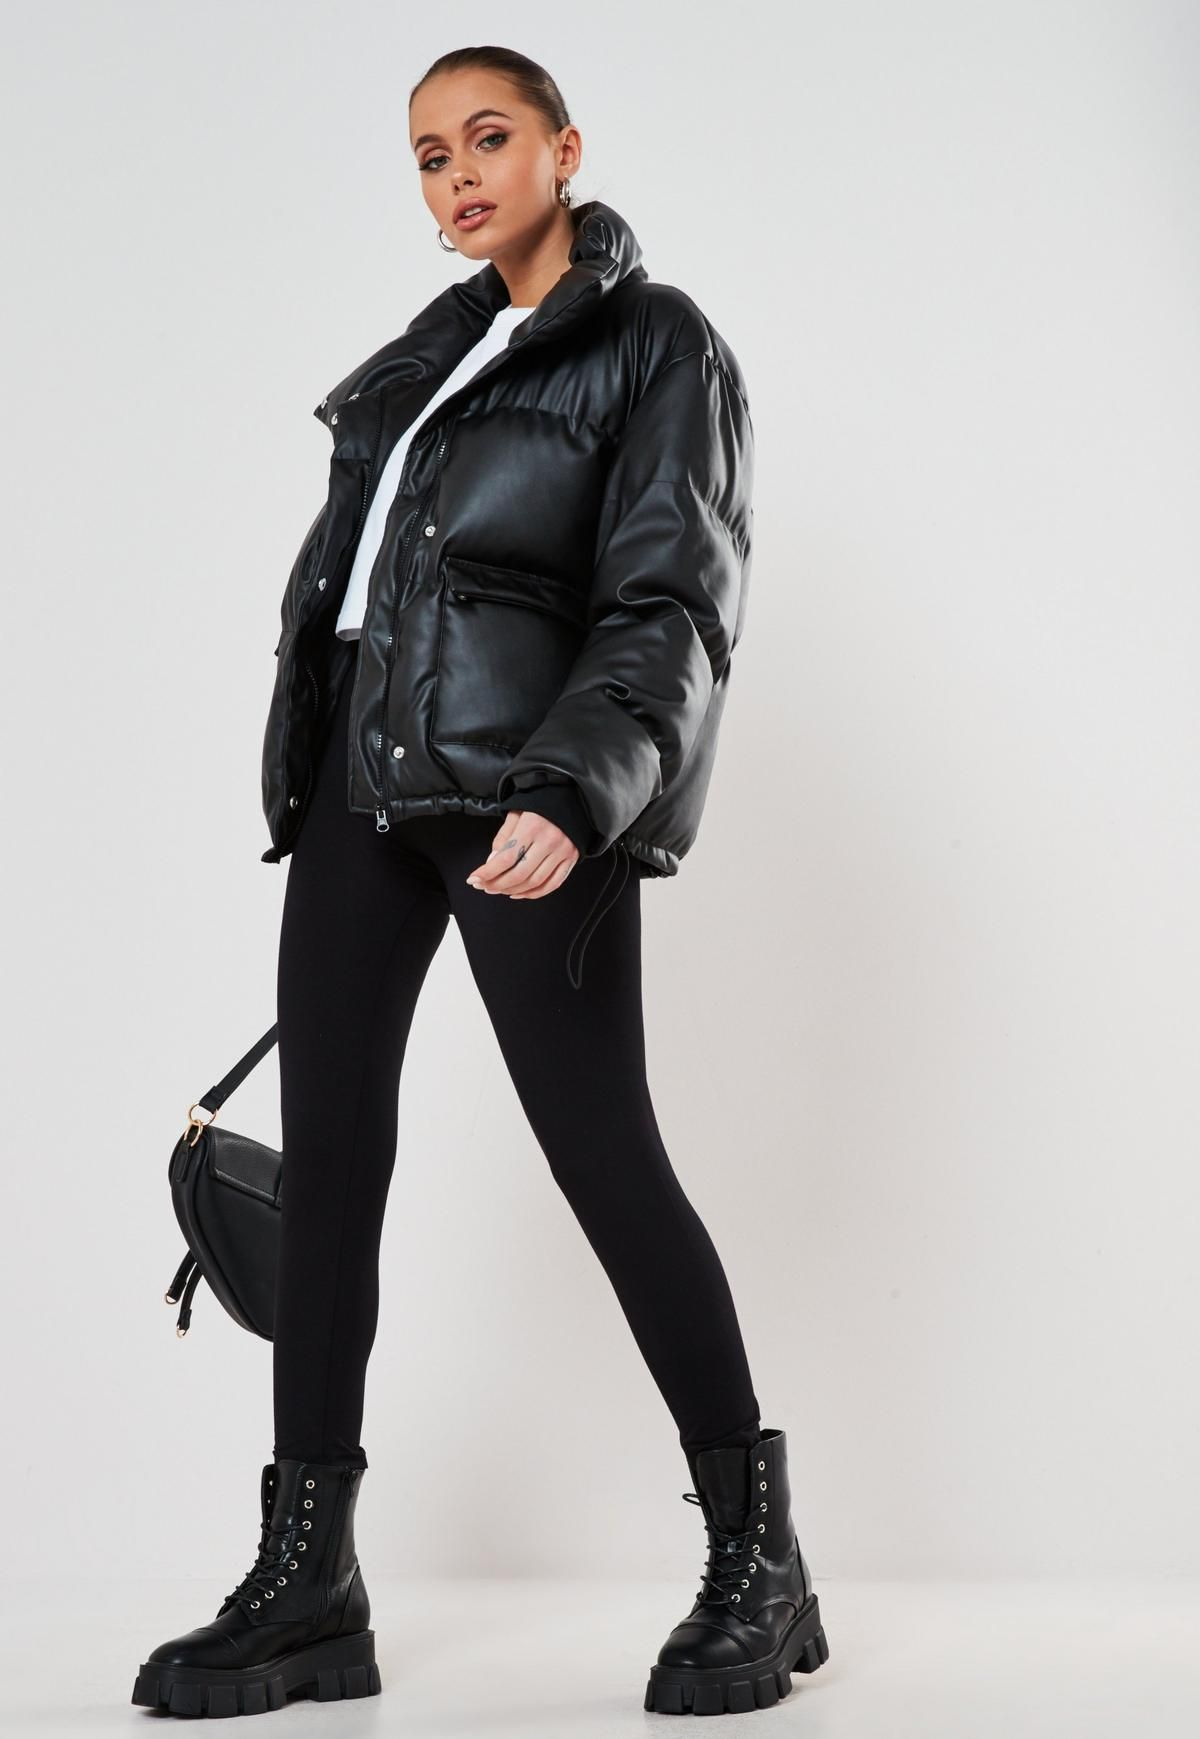 Missguided Black Faux Leather Puffer Jacket Puffer Jacket Outfit Leather Puffer Jacket Winter Jacket Outfits [ 1739 x 1200 Pixel ]